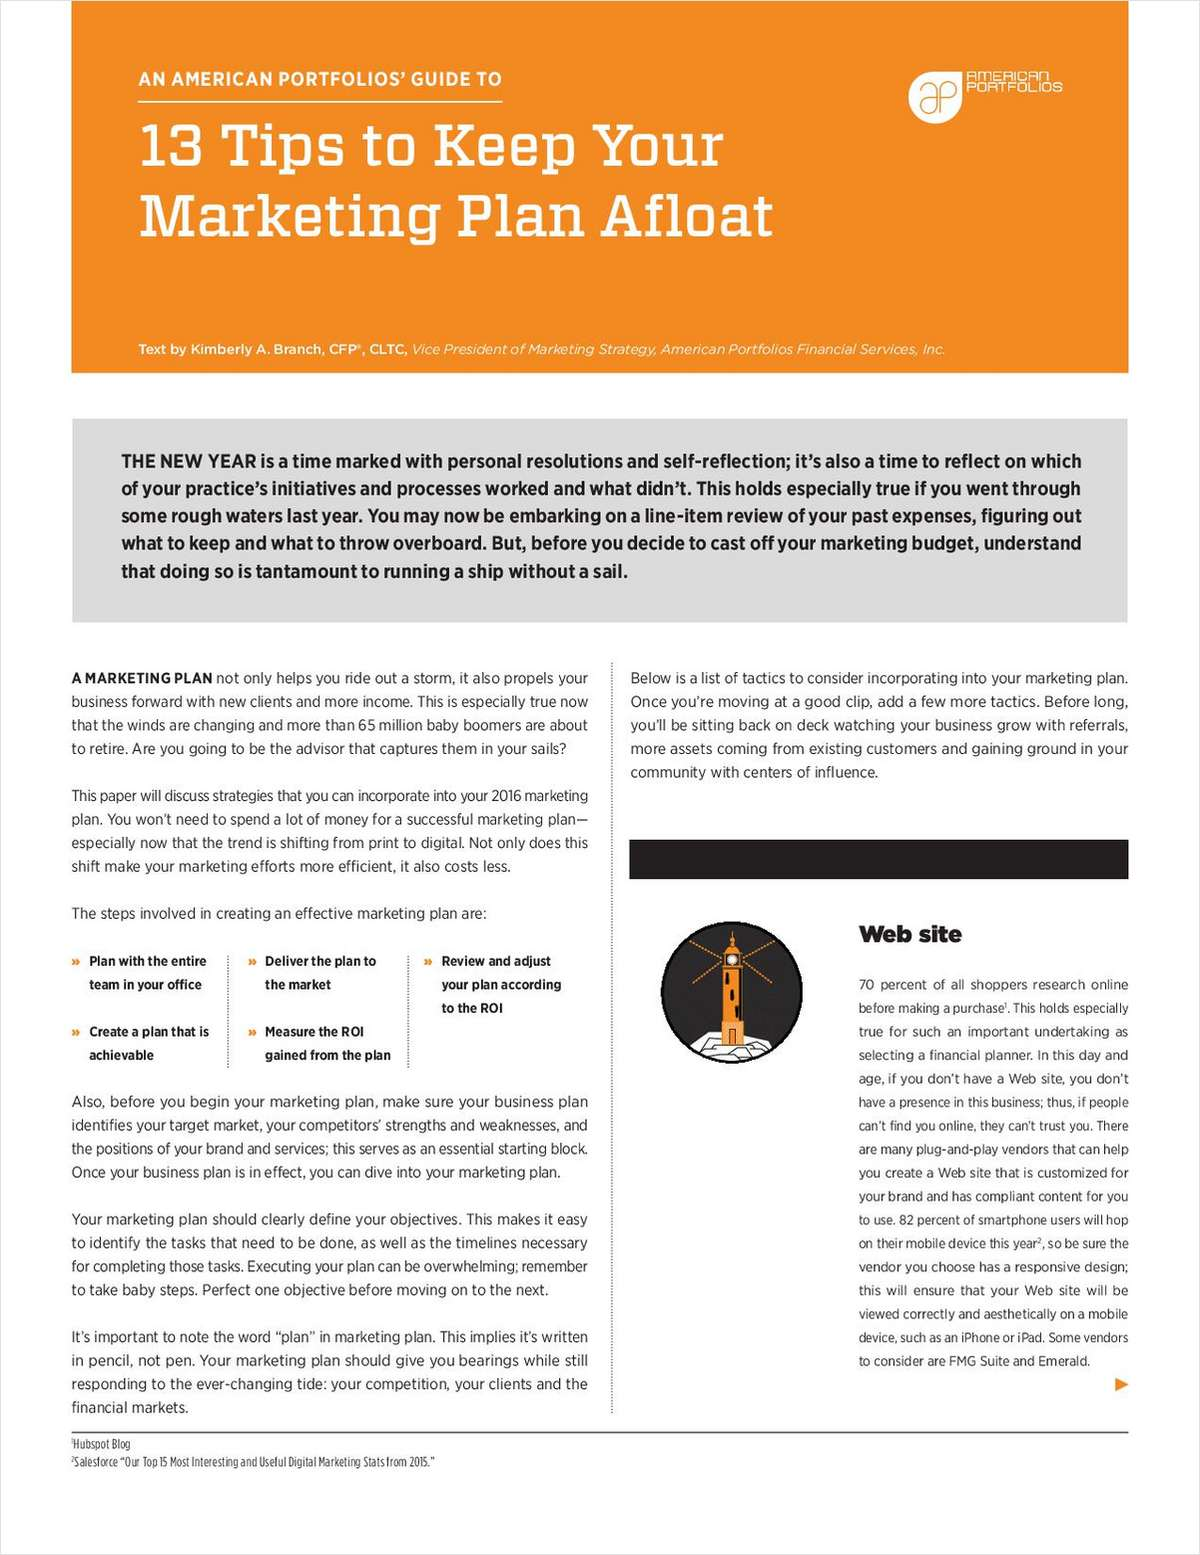 13 Tips to Keep Your Marketing Plan Afloat